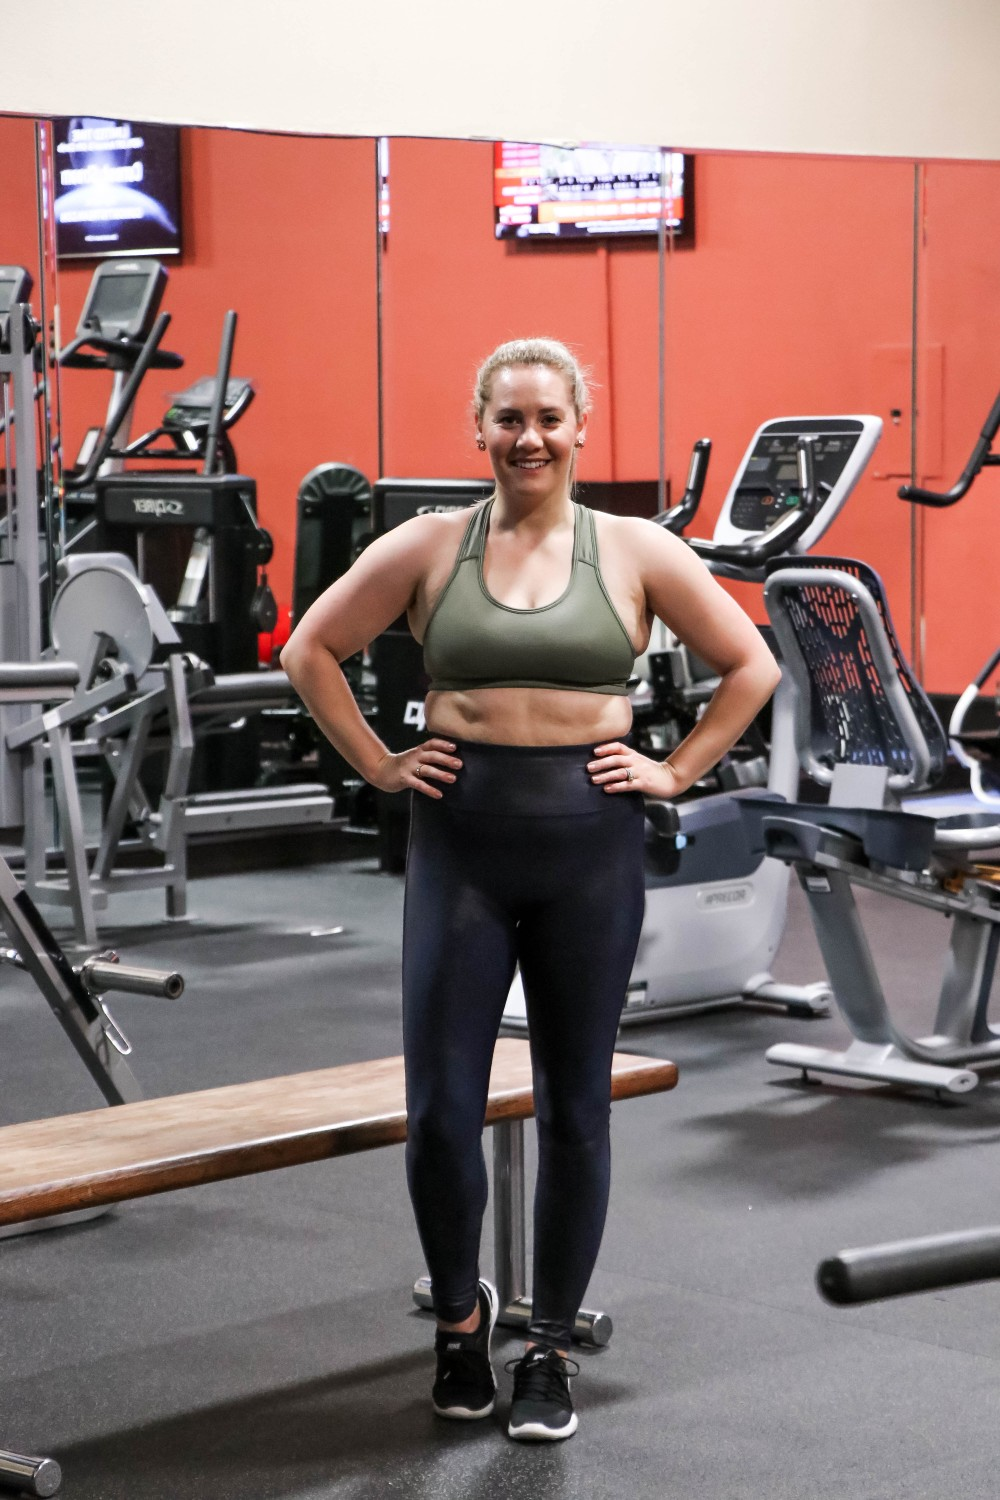 Sharing my updated health and fitness routine for 2019 on Have Need Want! What changes I've been making to my daily and weekly routine to set myself up for success in 2019. Click on the photo to read the post!  #healthandfitness #fitnessmotivation #healthylifestyle #keto #ketosis #fitnessinspiration